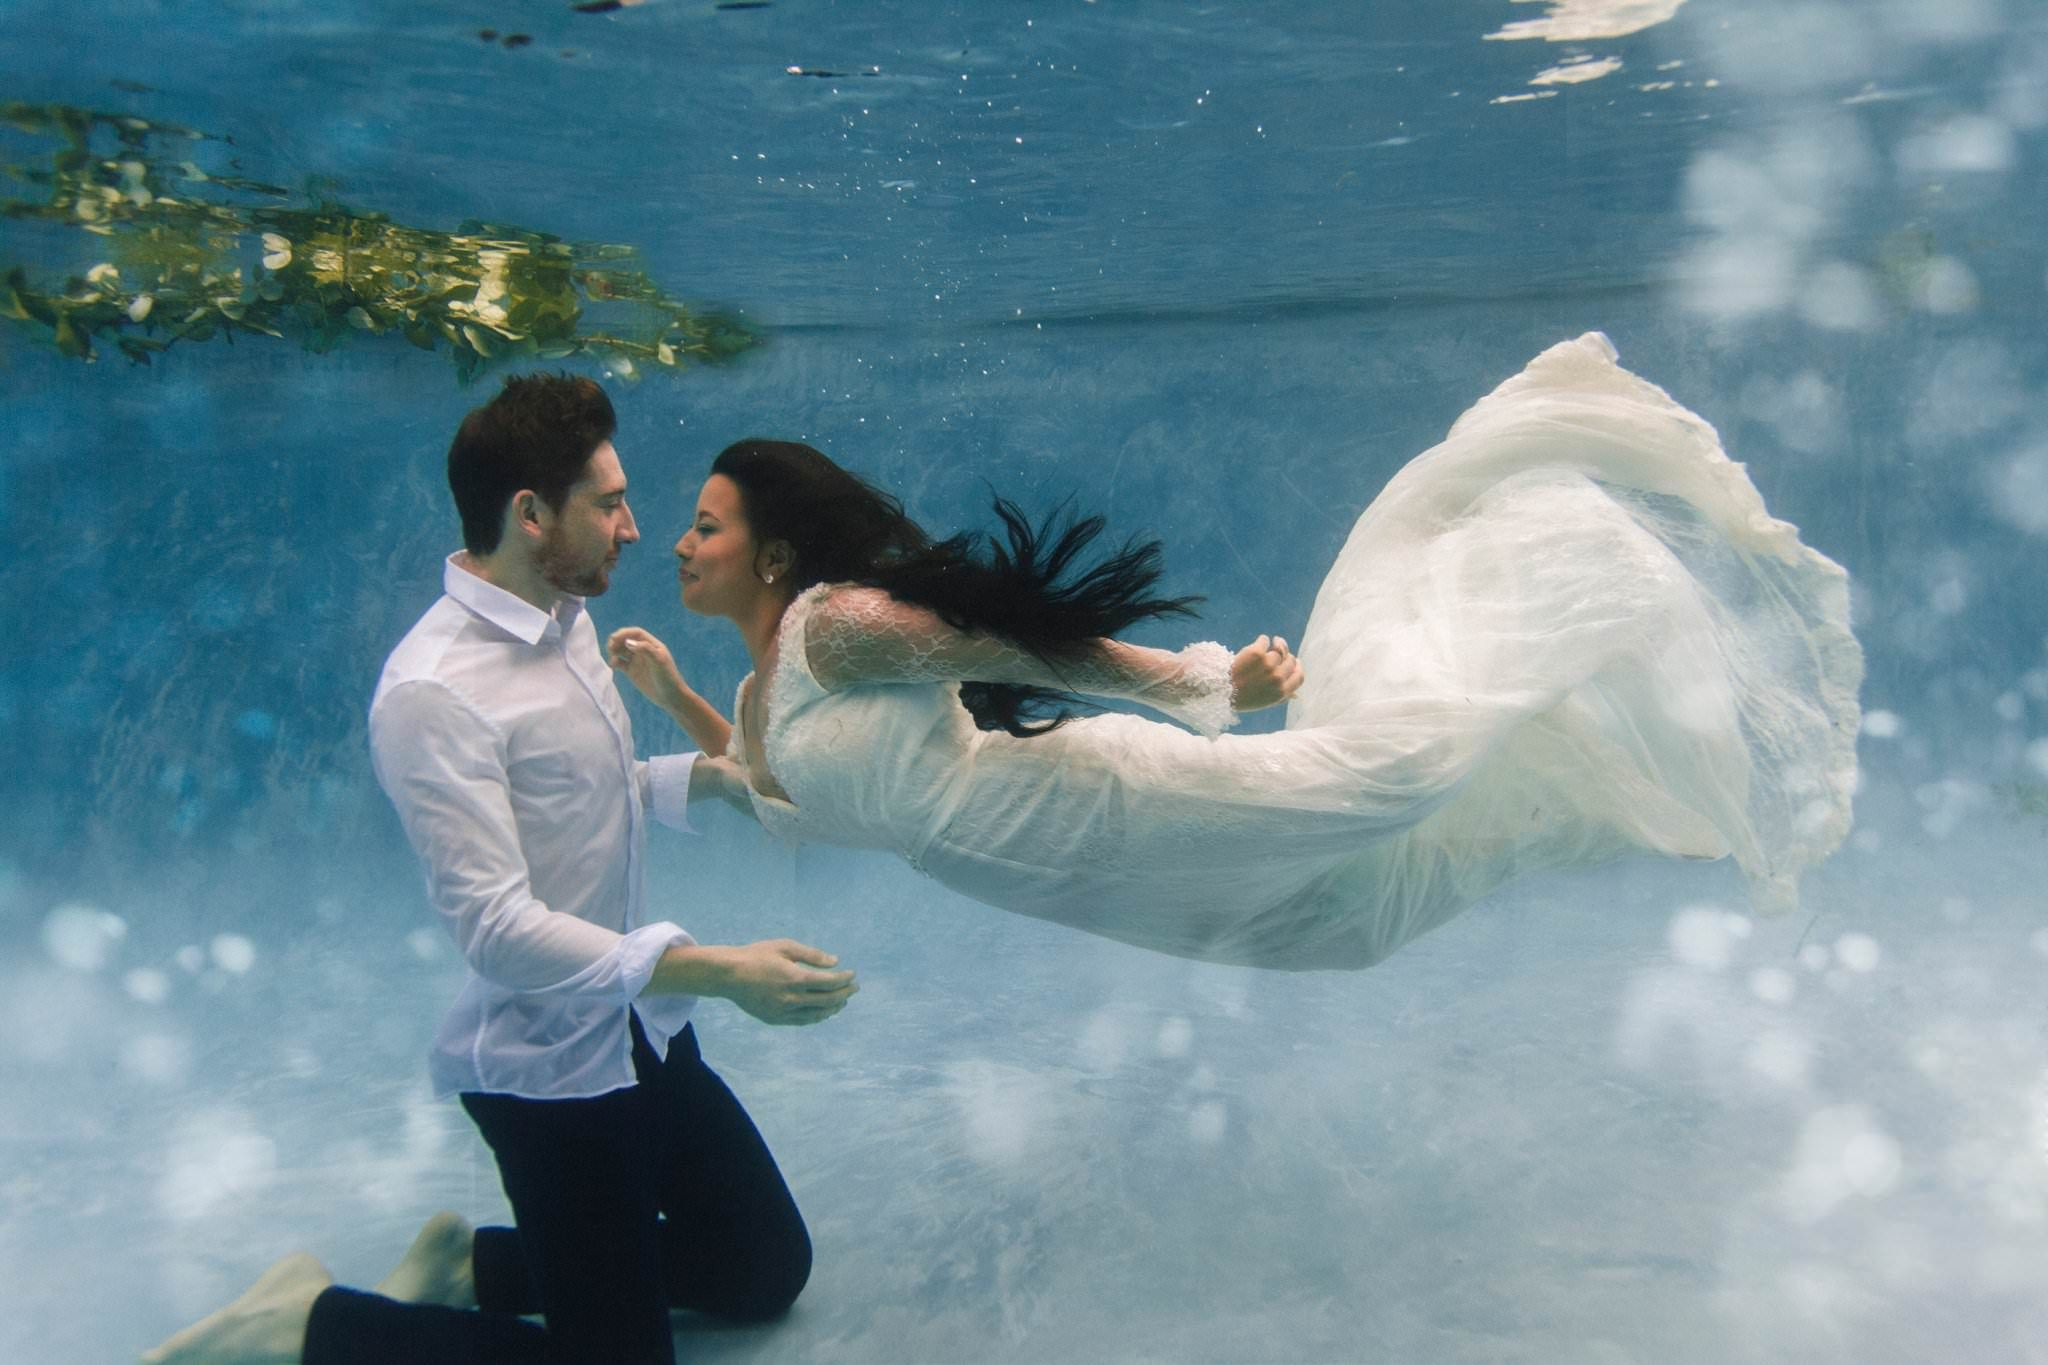 Swimming. Ethereal Green Water Photography | Photography